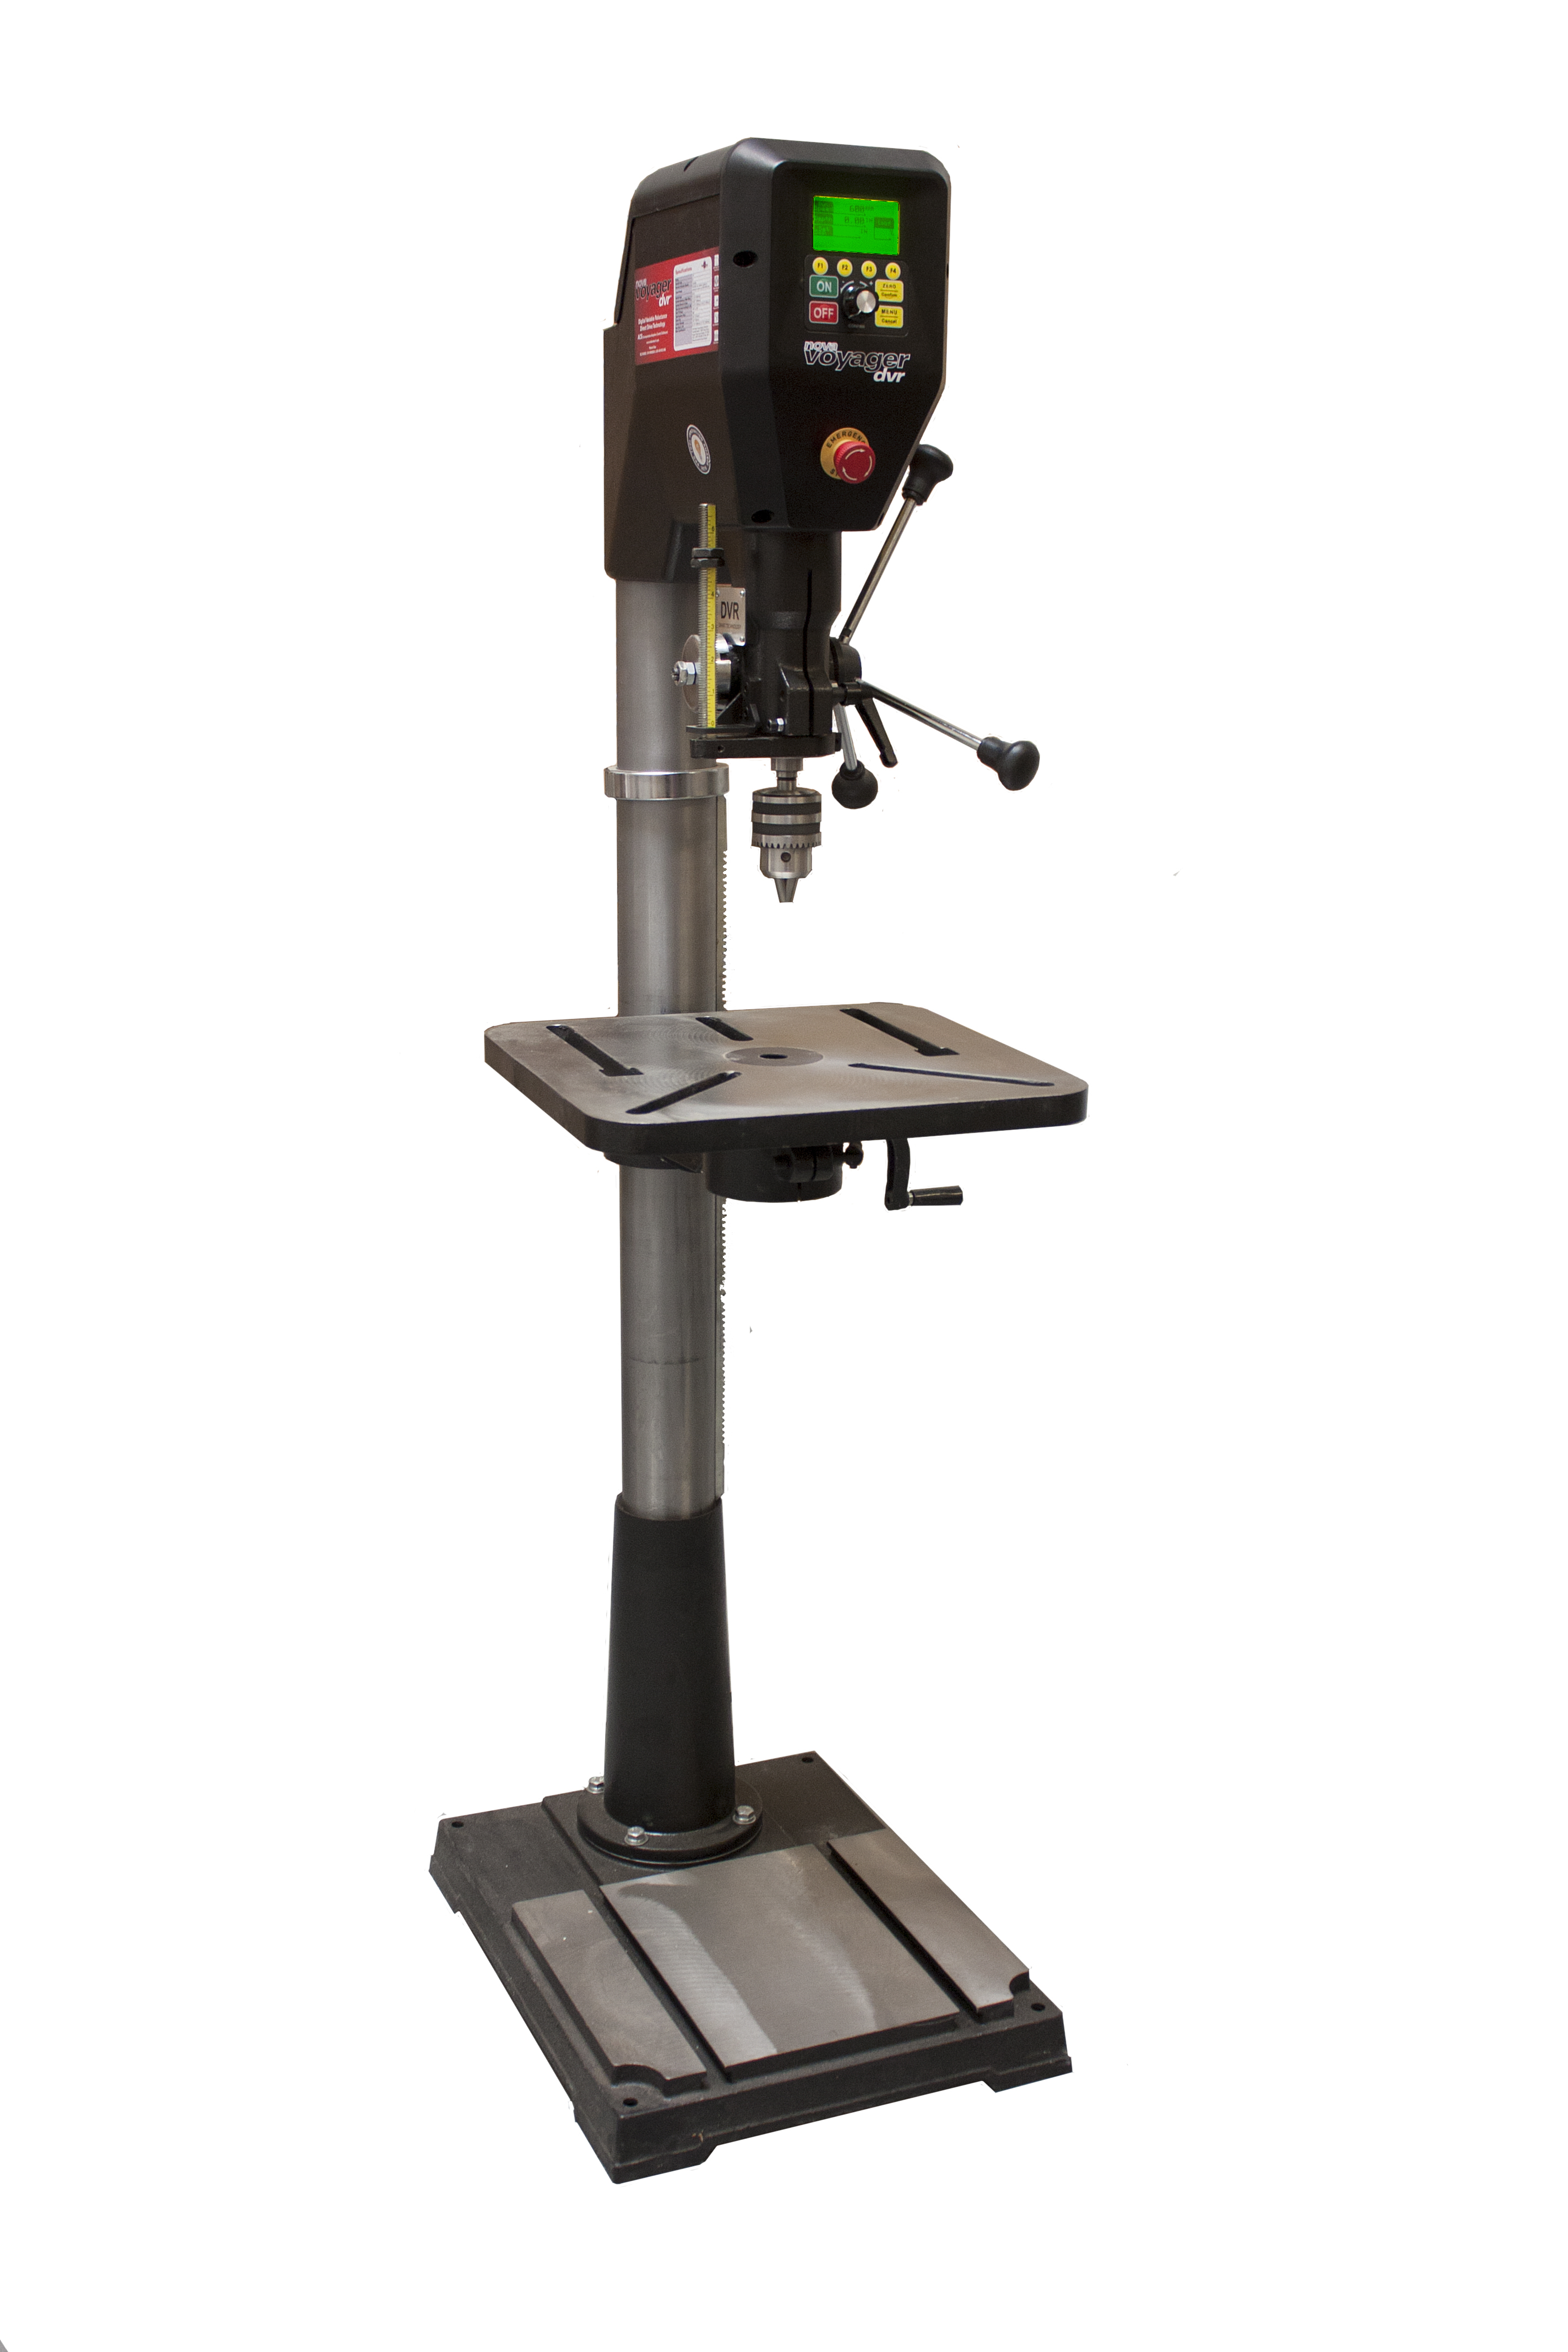 the workshop s first smart drill press combing the best of drill presses with 21st century nova innovation  [ 2848 x 4272 Pixel ]